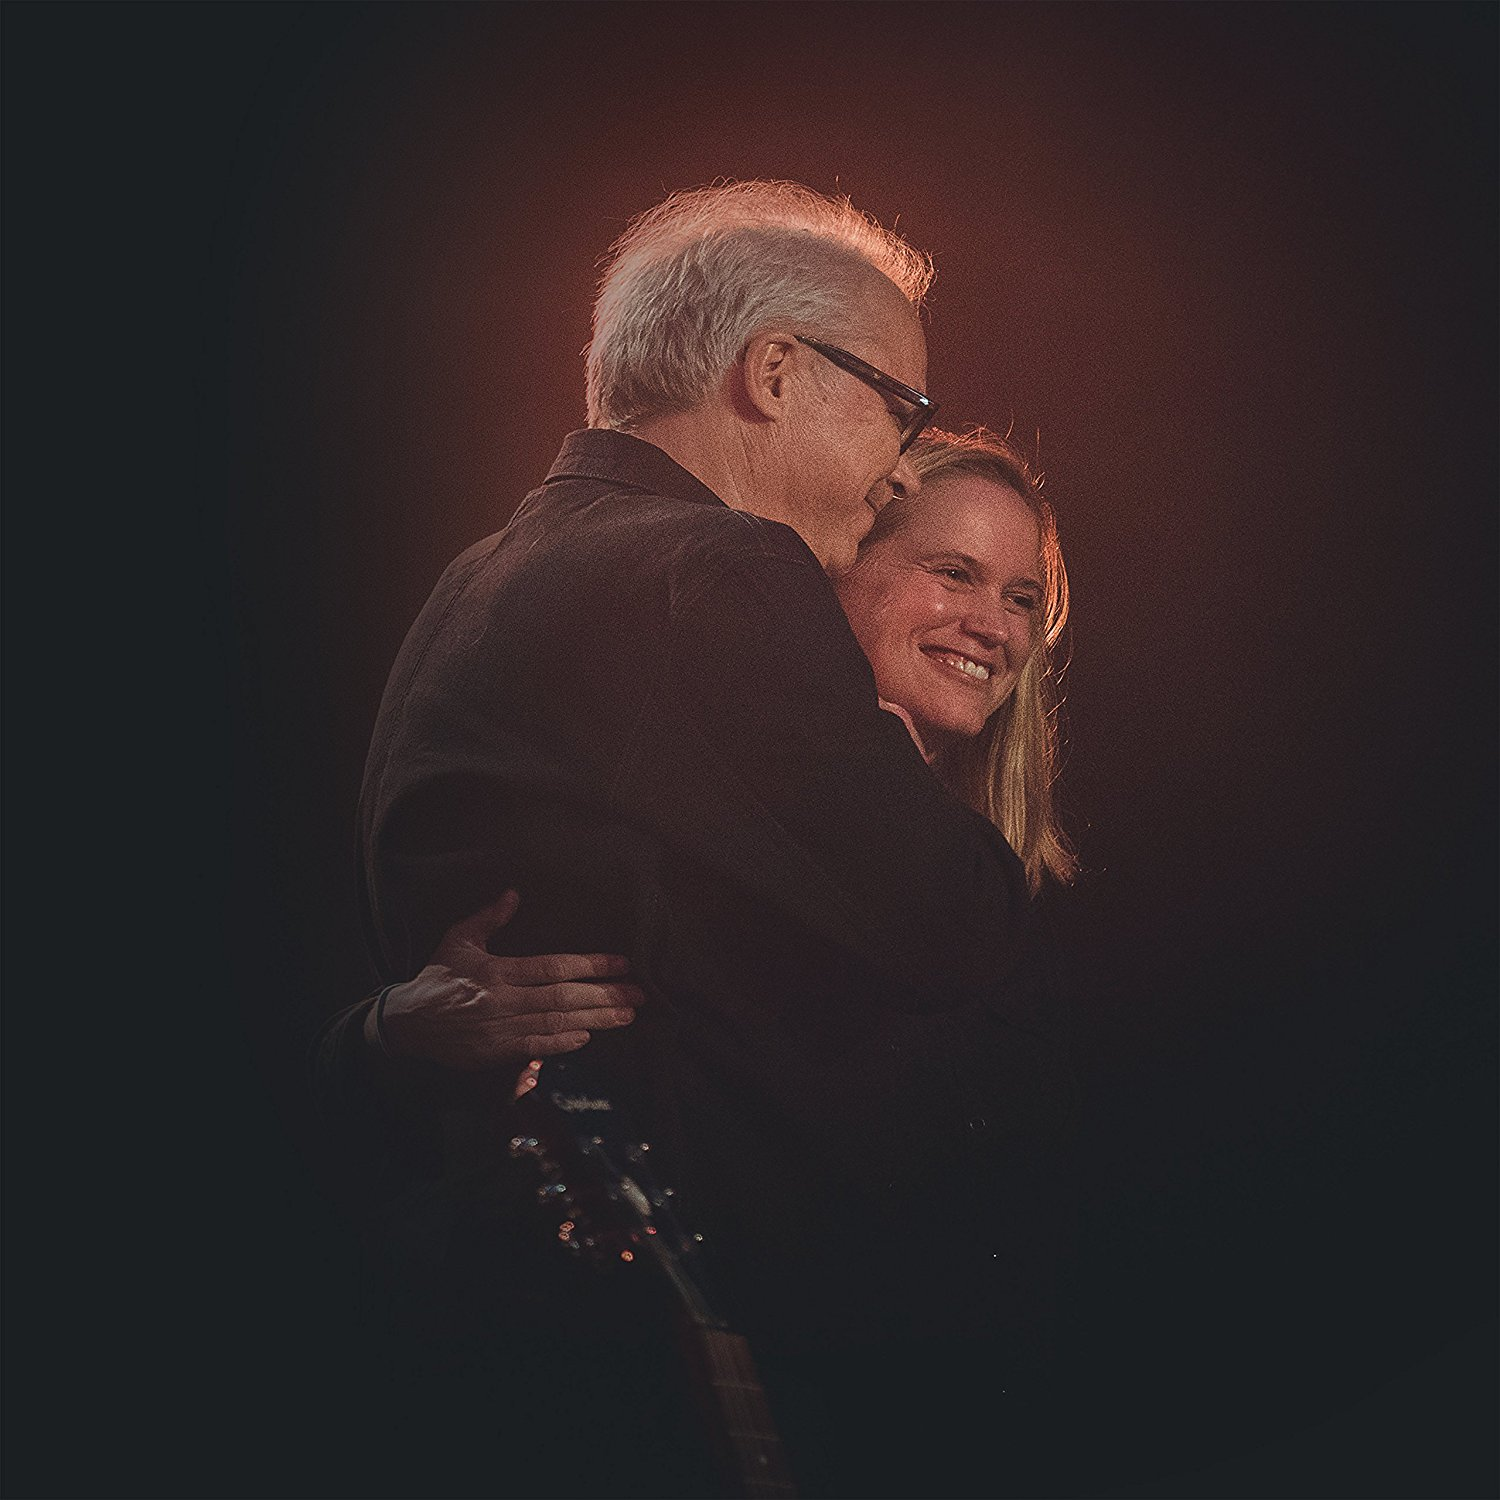 Chantal Acda & Bill Frisell - Live At Jazz Middelheim